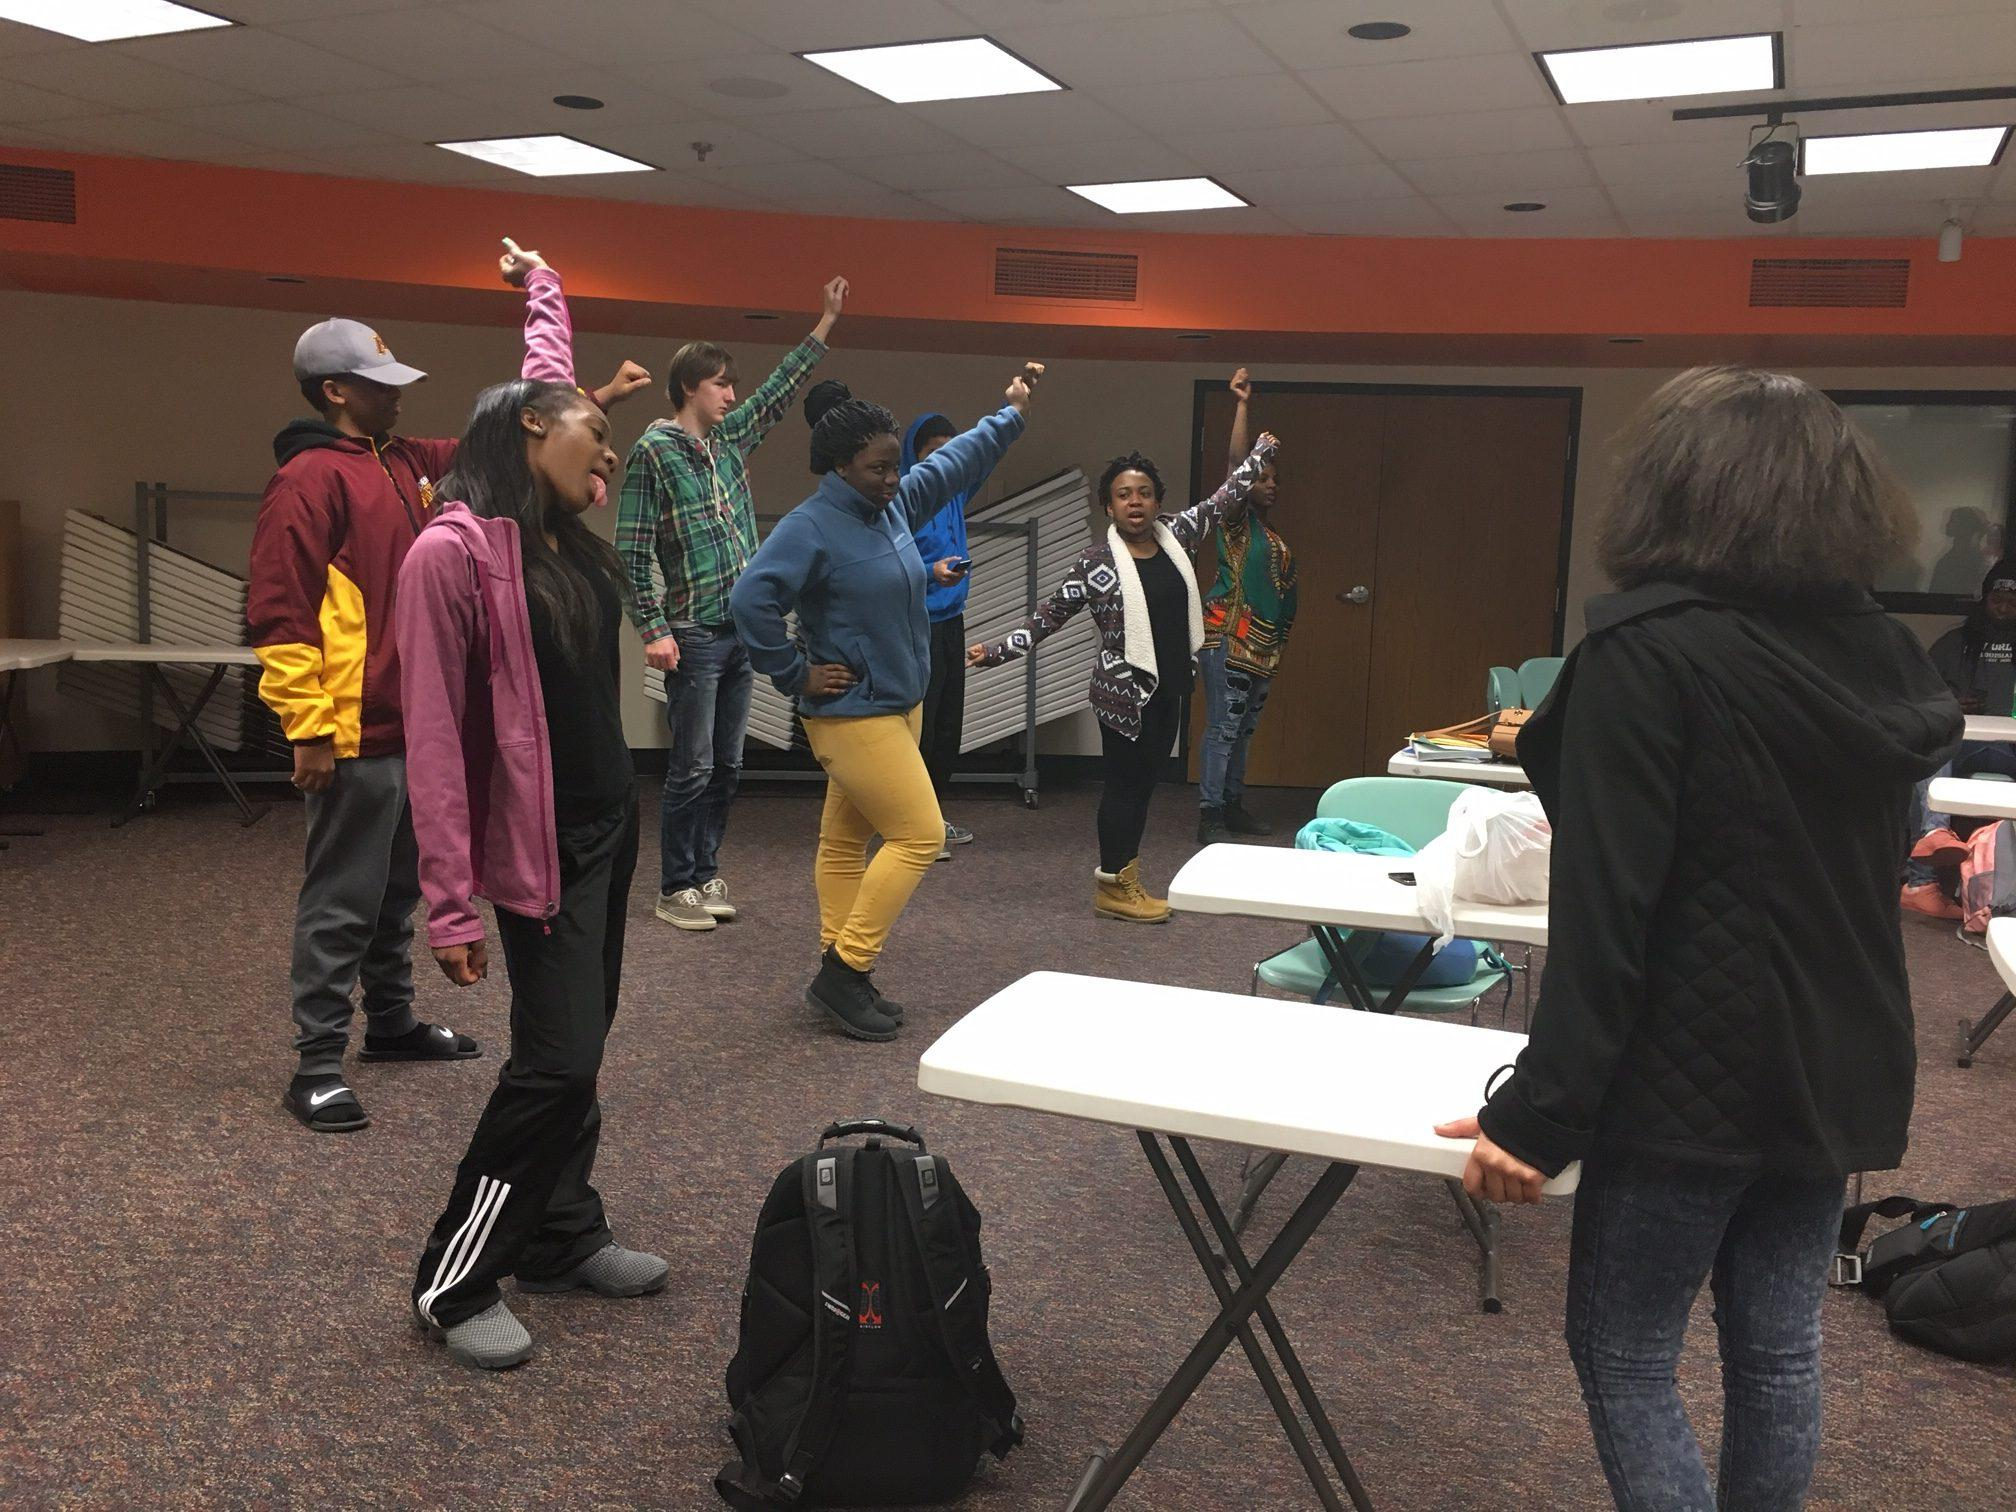 Students practice their routine for the Multicultural show Feb. 15. The Multicultural show takes place March 10 in the auditorium.